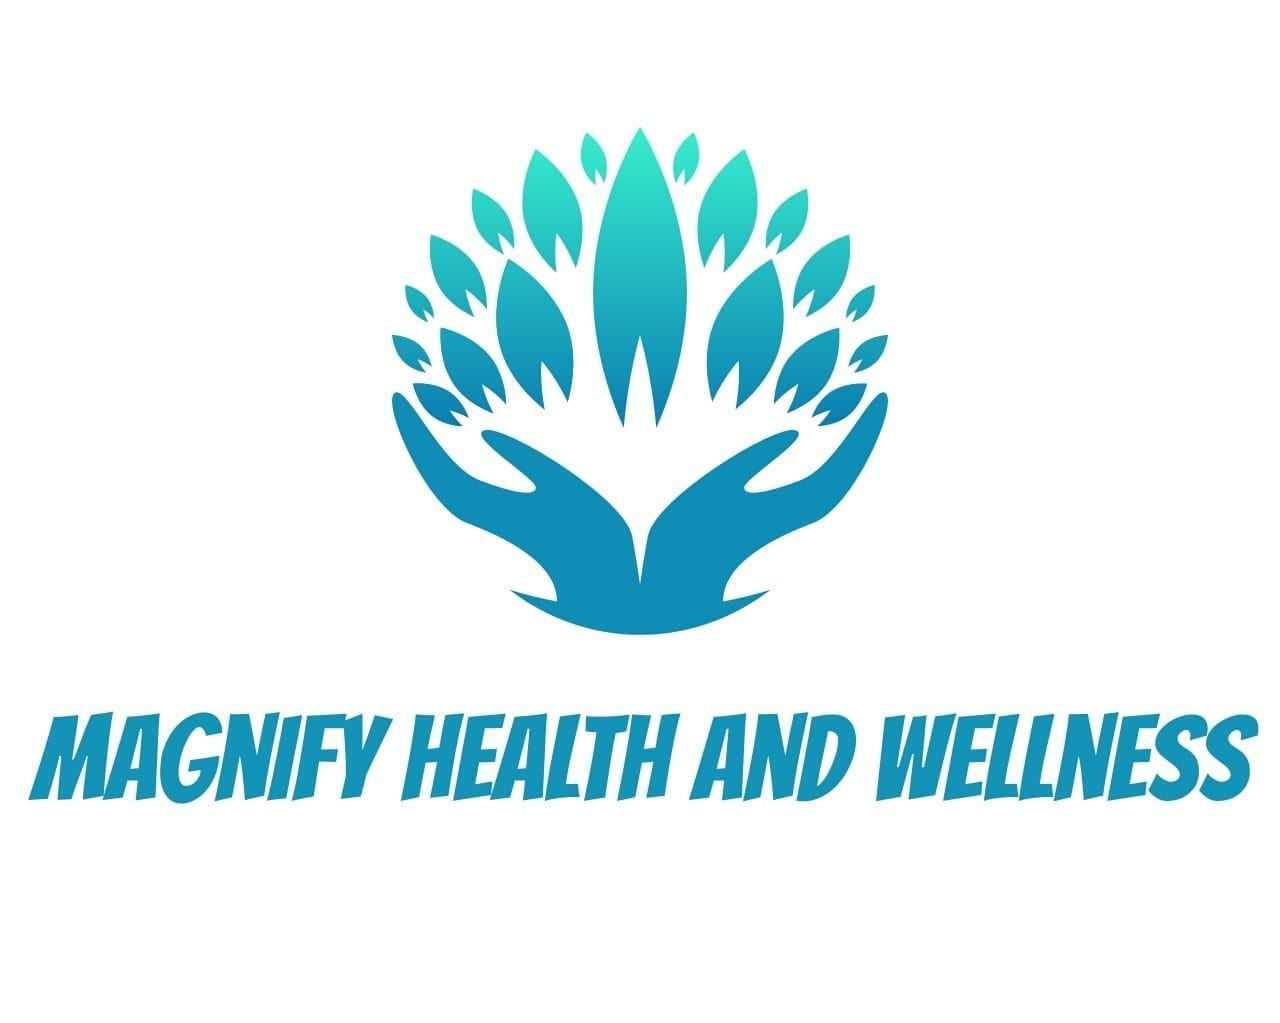 Magnify Health and Wellness